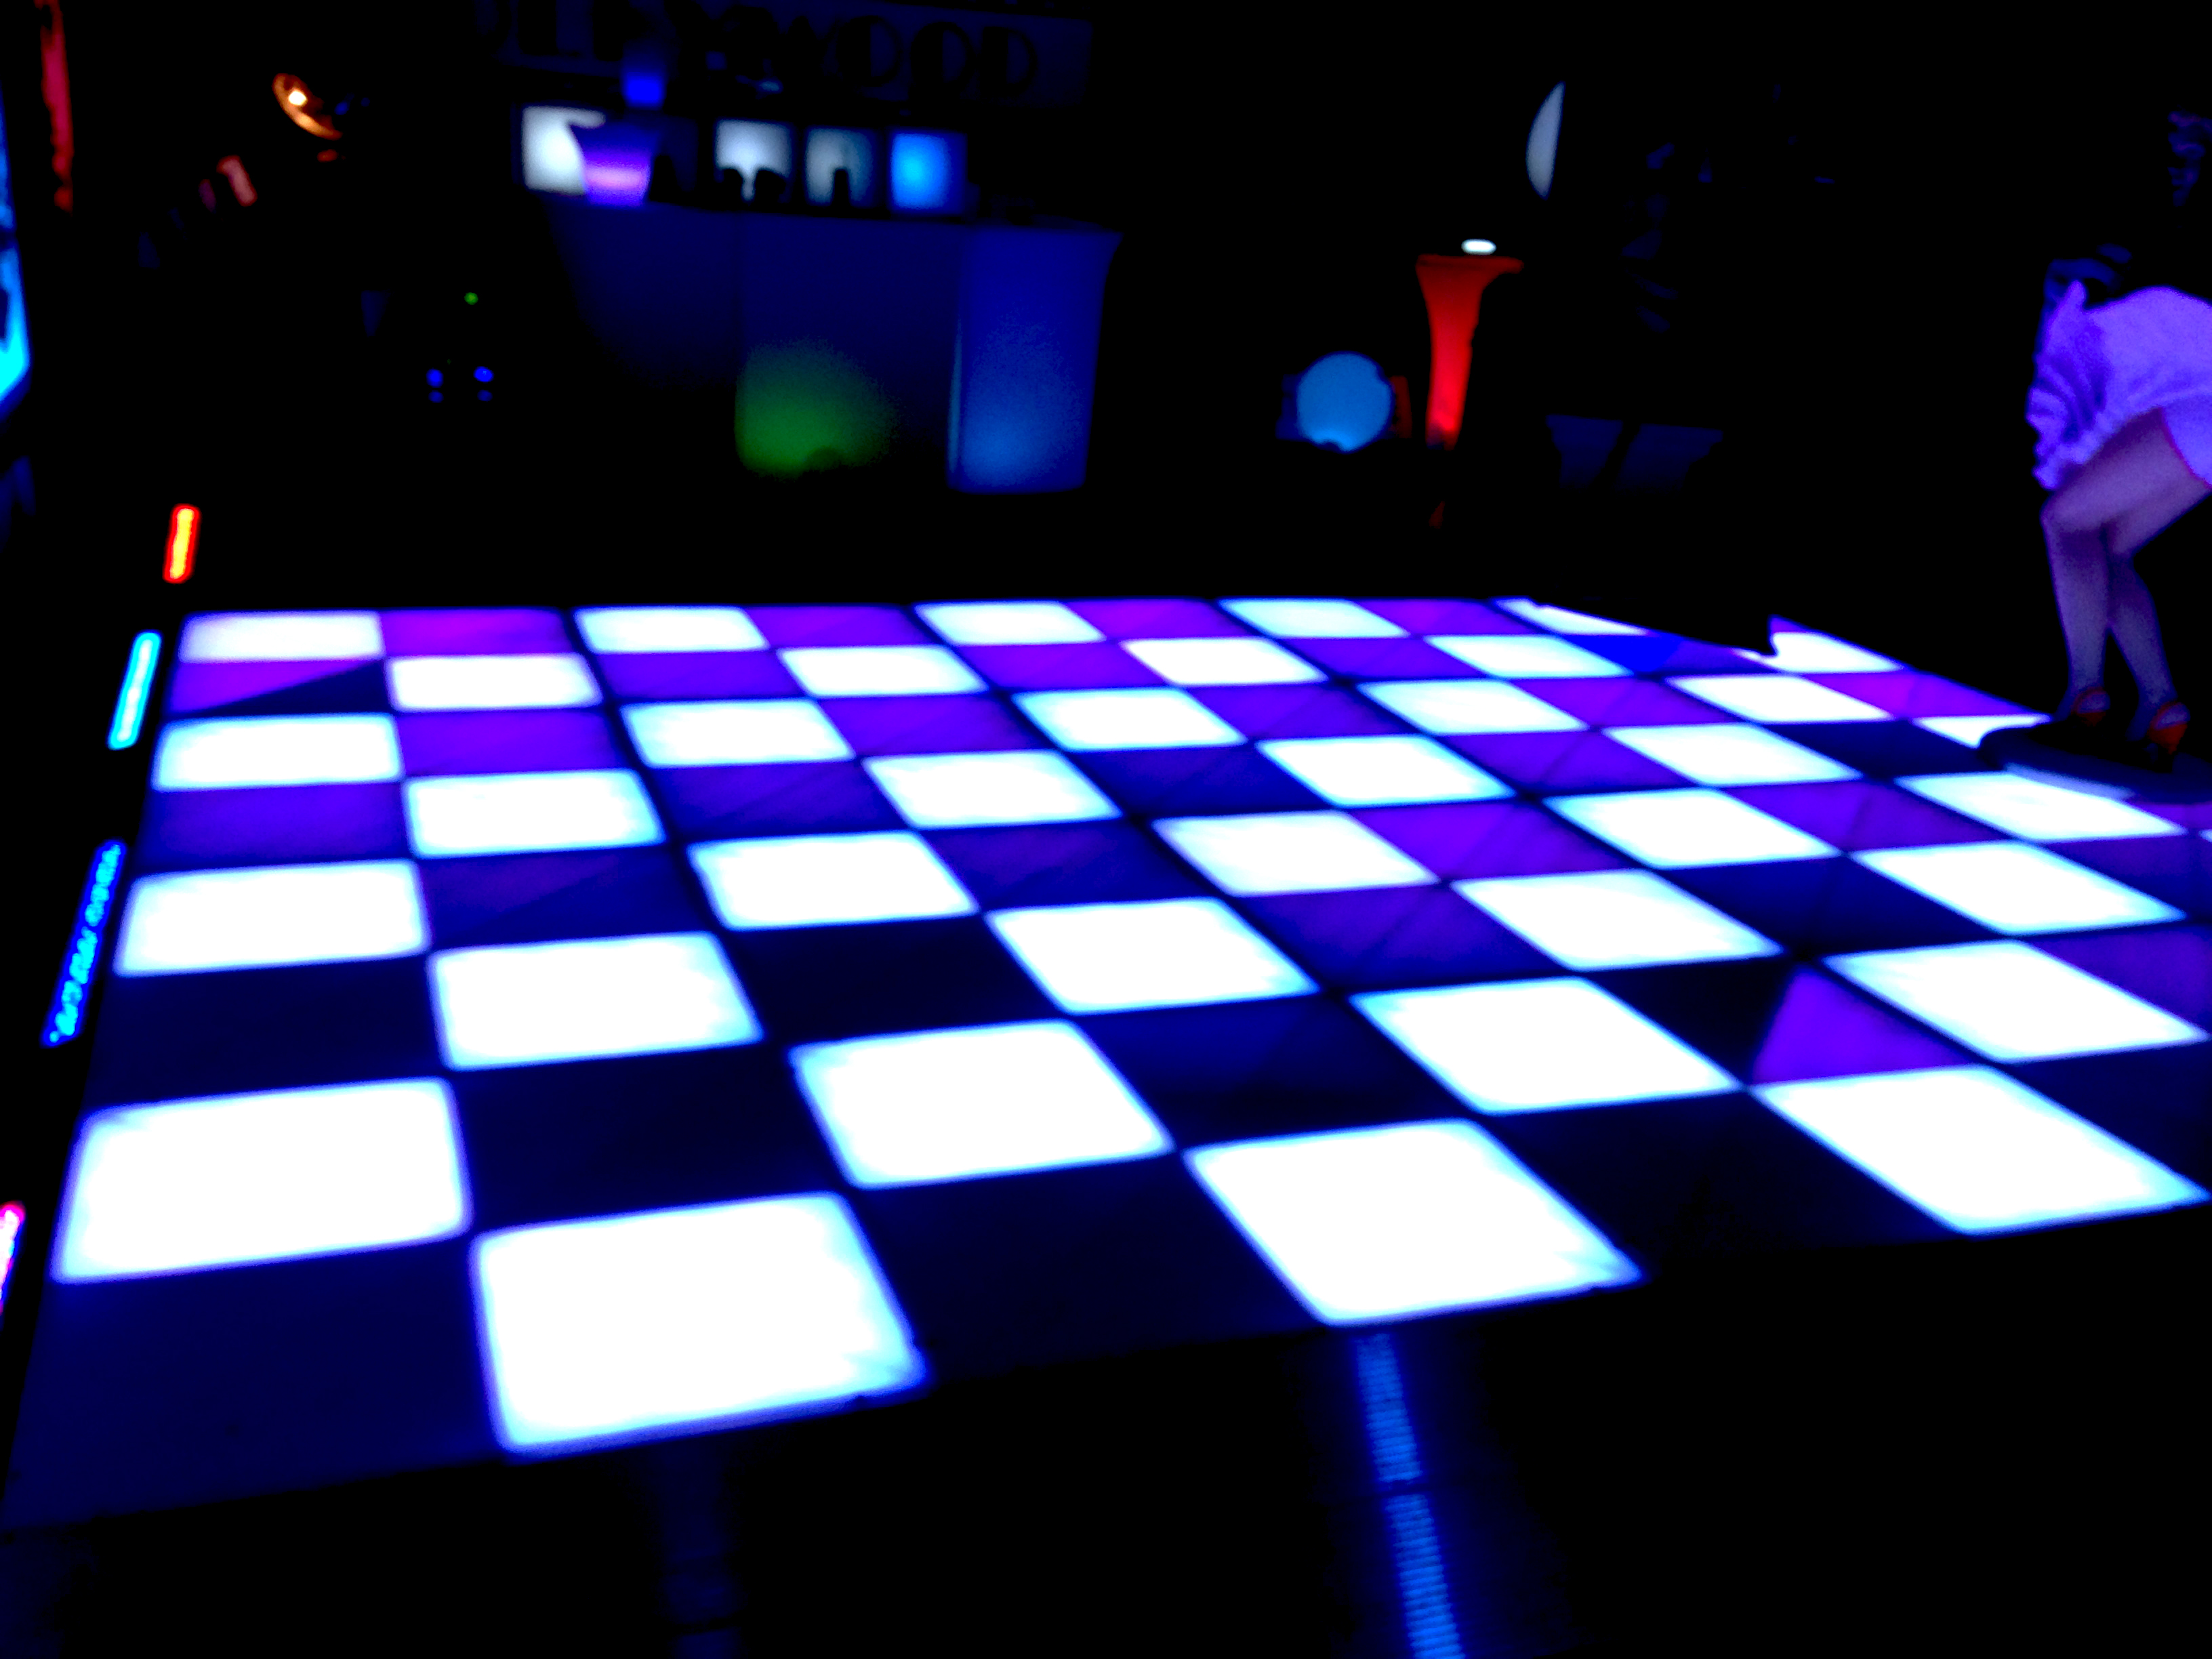 Dance Floor Wallpaper Wallpapersafari